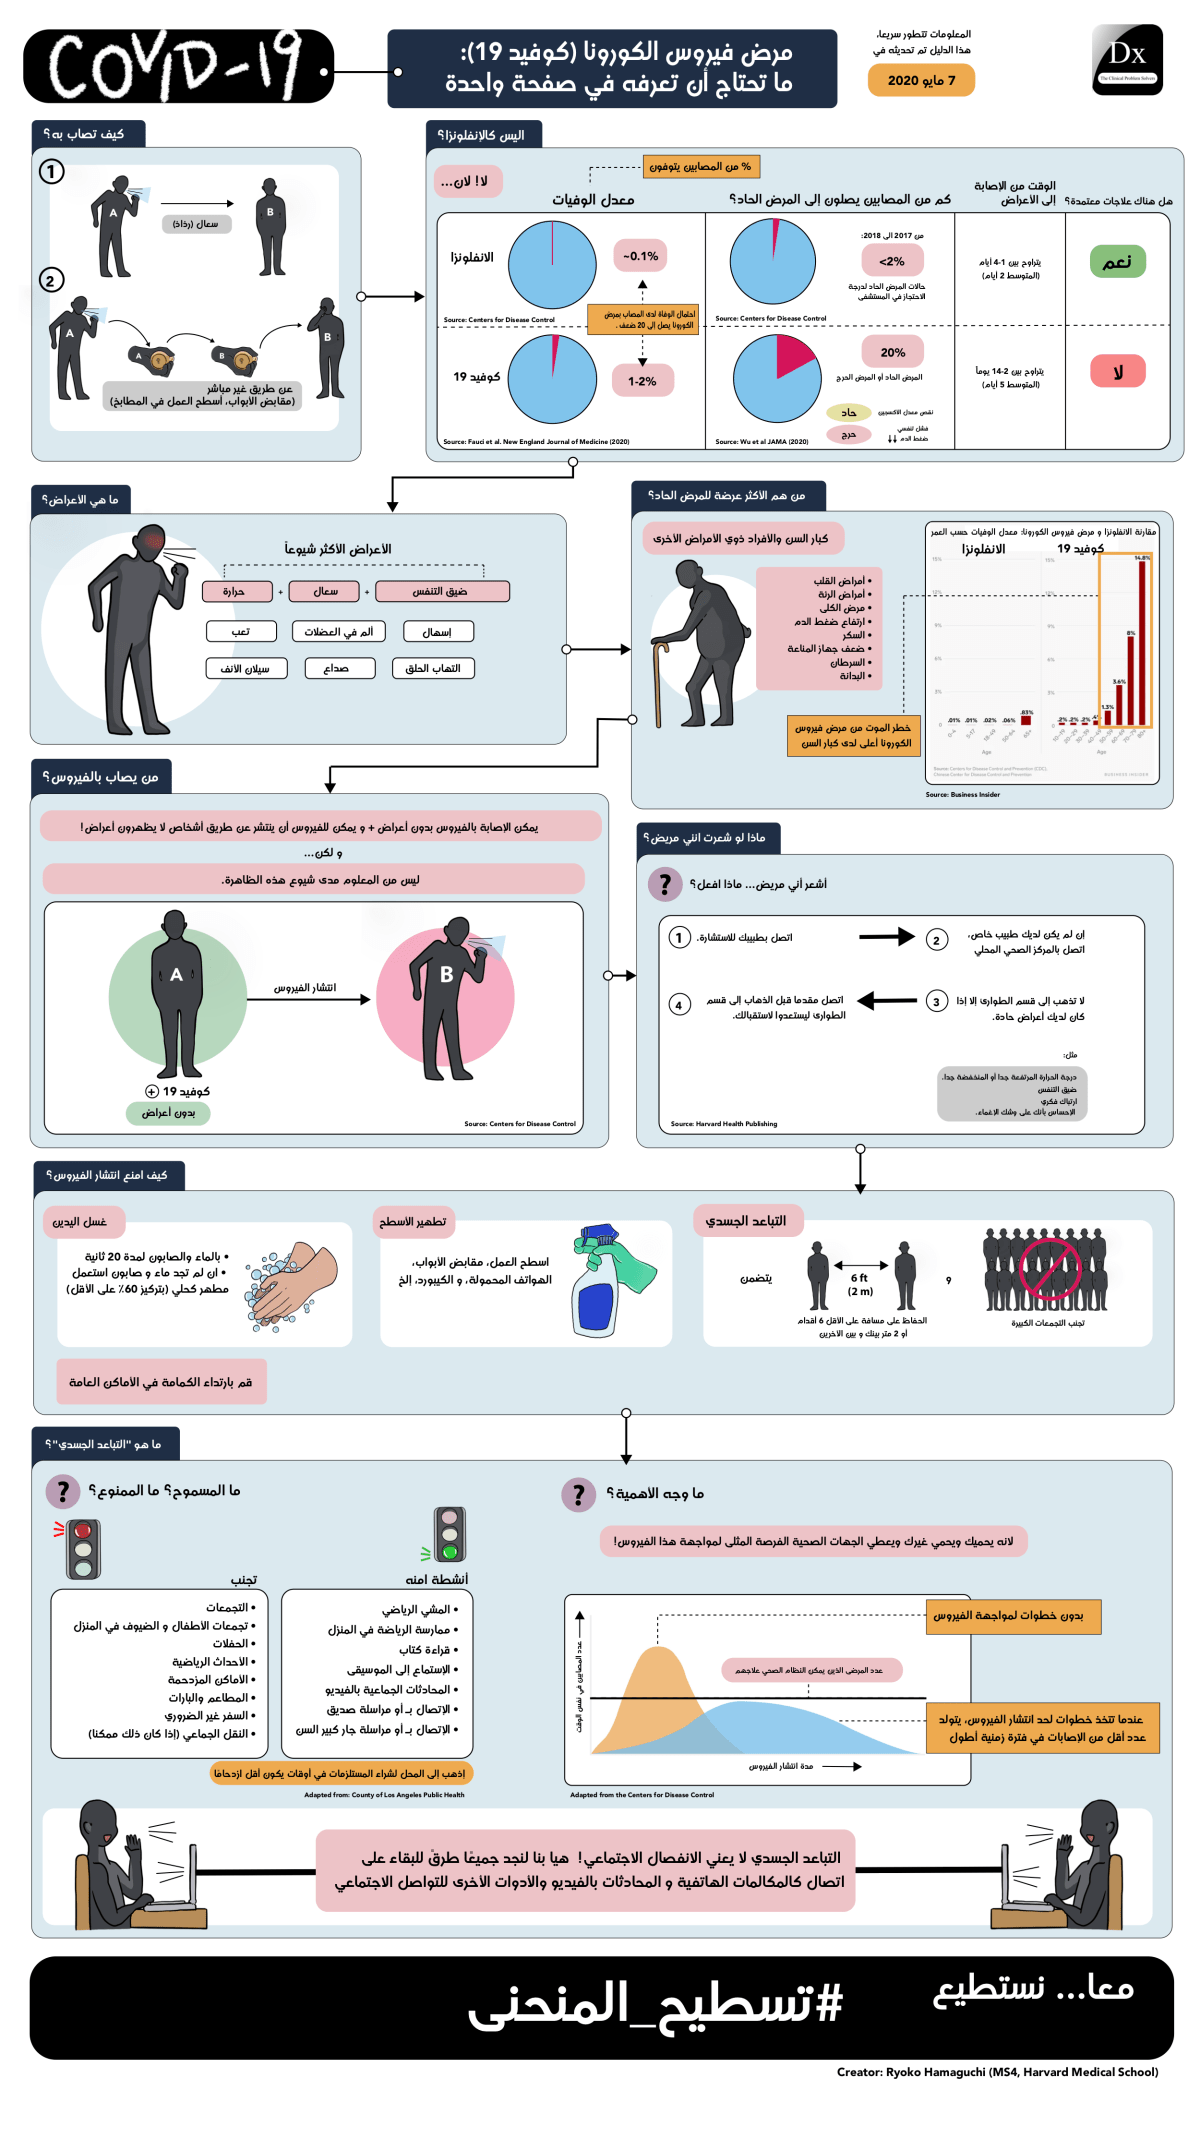 5-3-20_ARABIC_COVID19 Patient Communication Tool.png